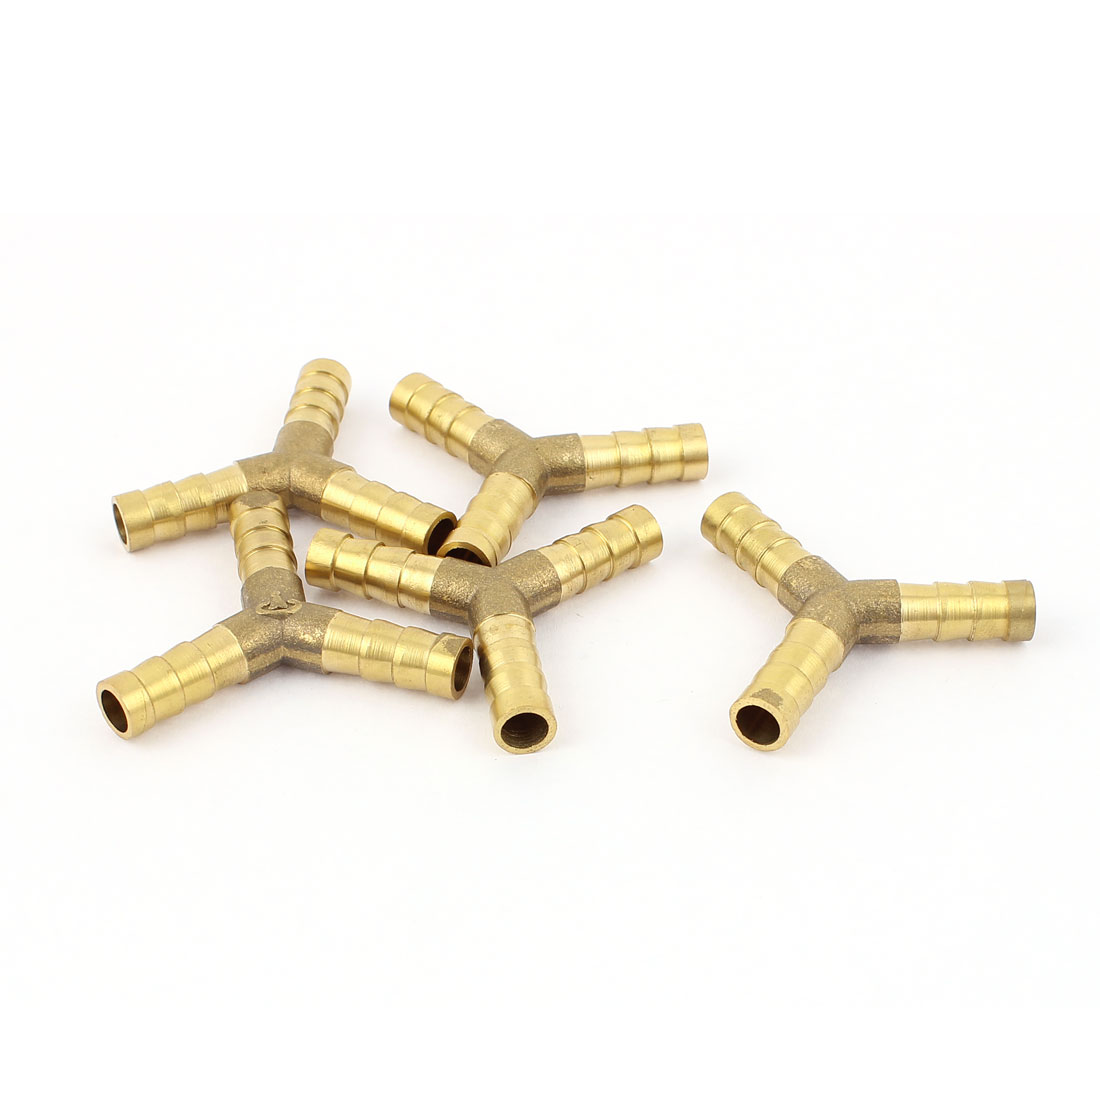 5 Pcs 8mm Dia Y Type Tube Connector Brass Fuel Hose Joiner Fittings